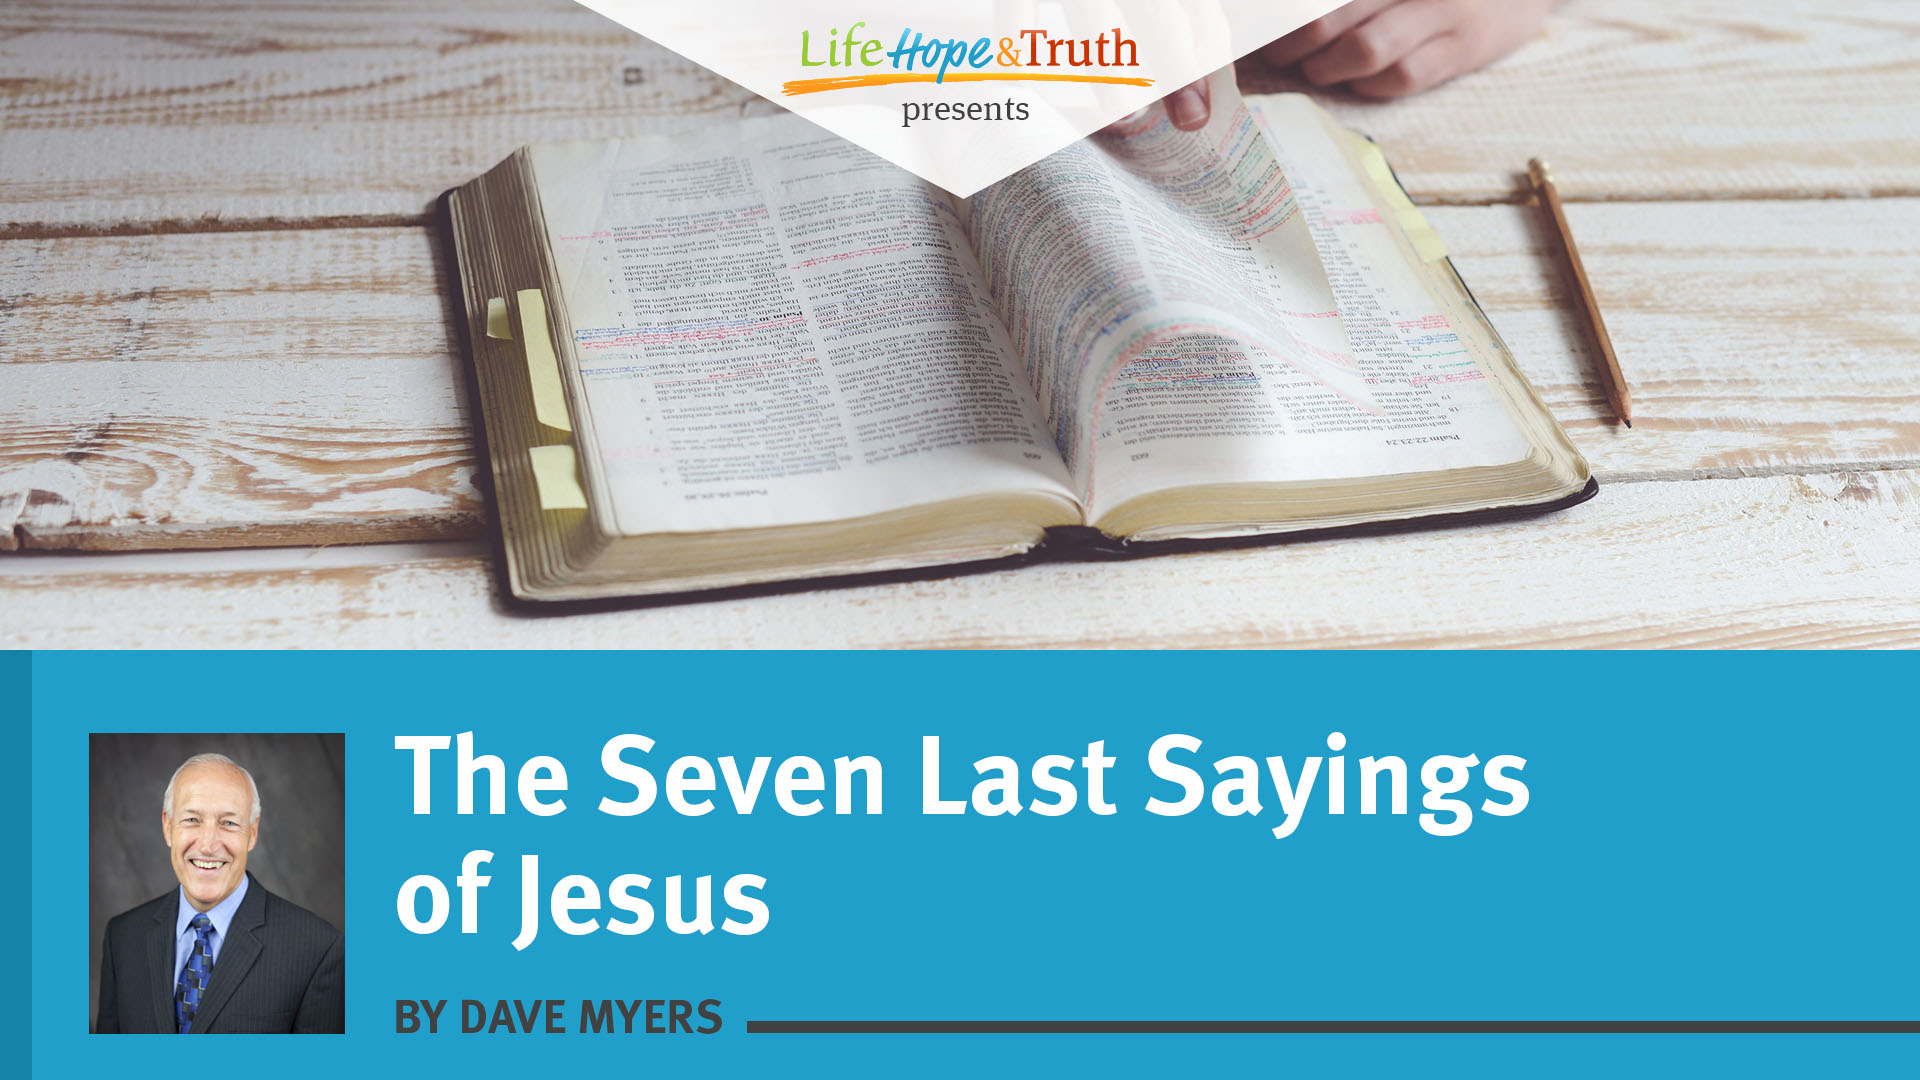 The Seven Last Sayings of Jesus